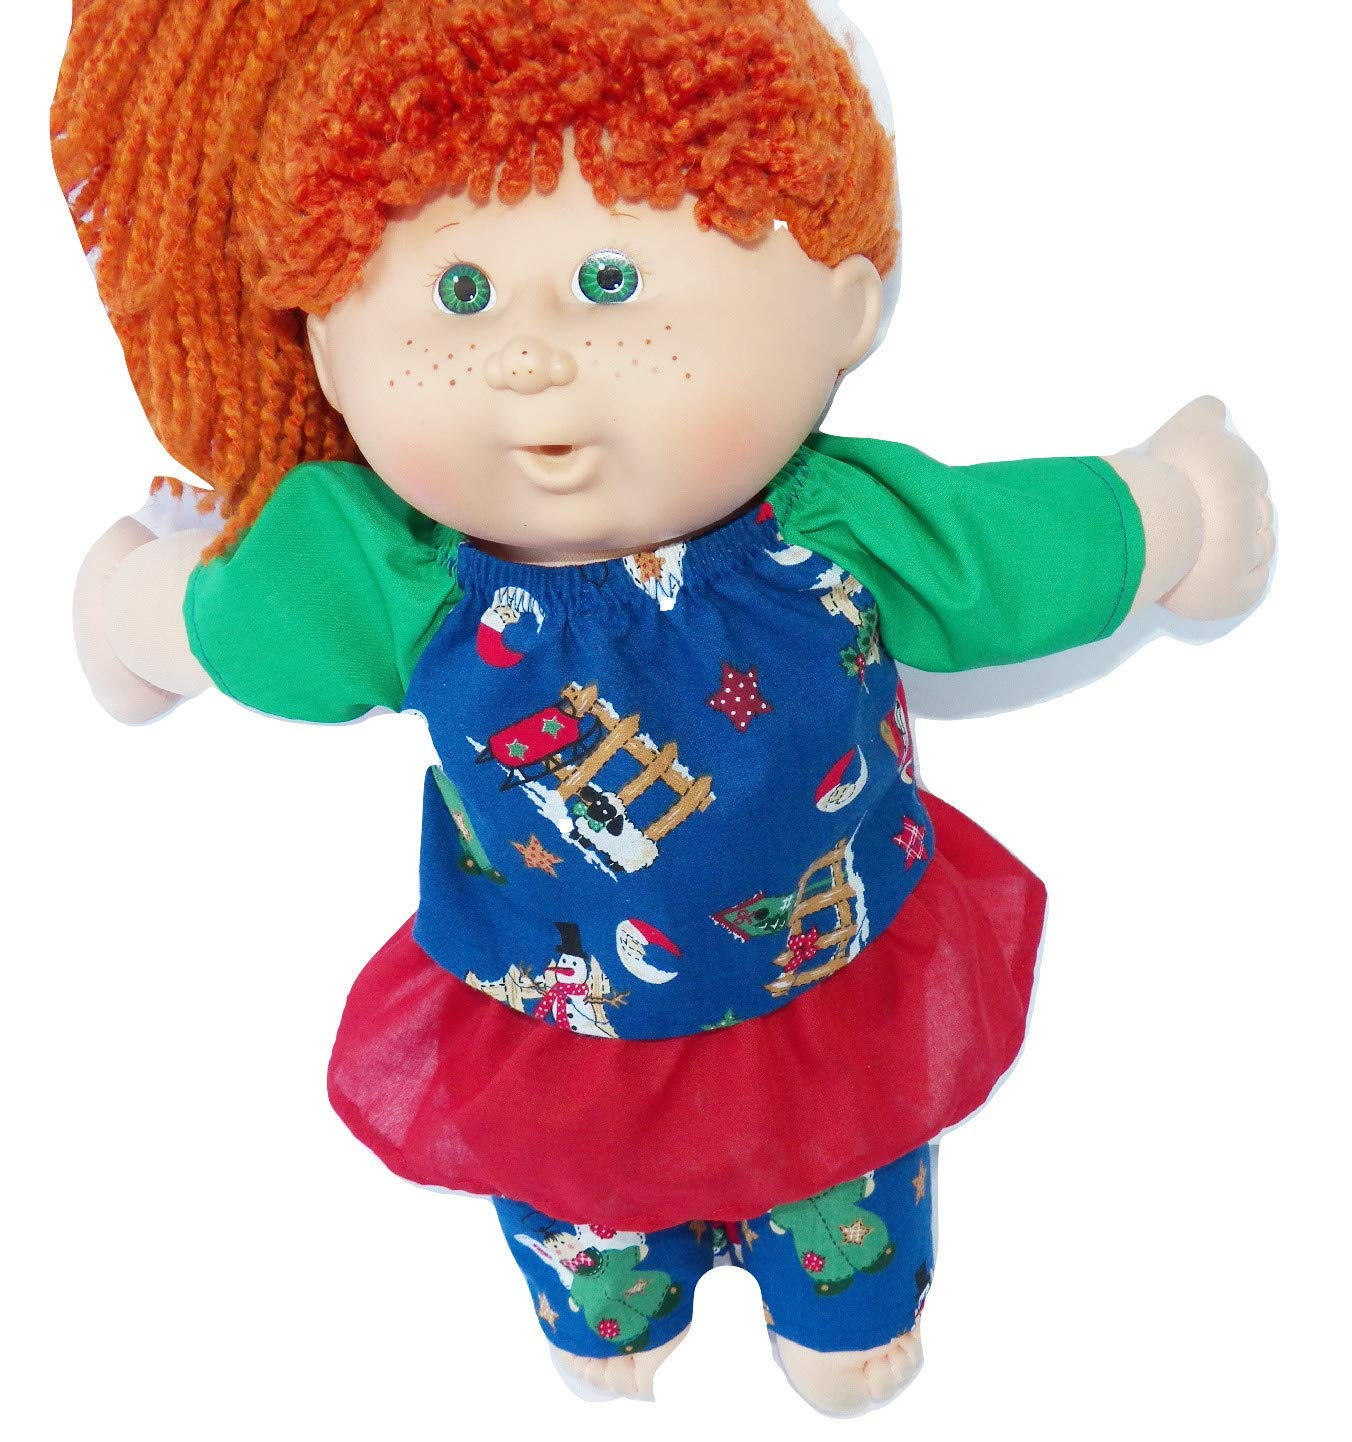 Cabbage Patch Doll Clothes 16 Inch Girl Size Includes 3 Piece Christmas Outfit Blue Angel and Snowman Print No Doll